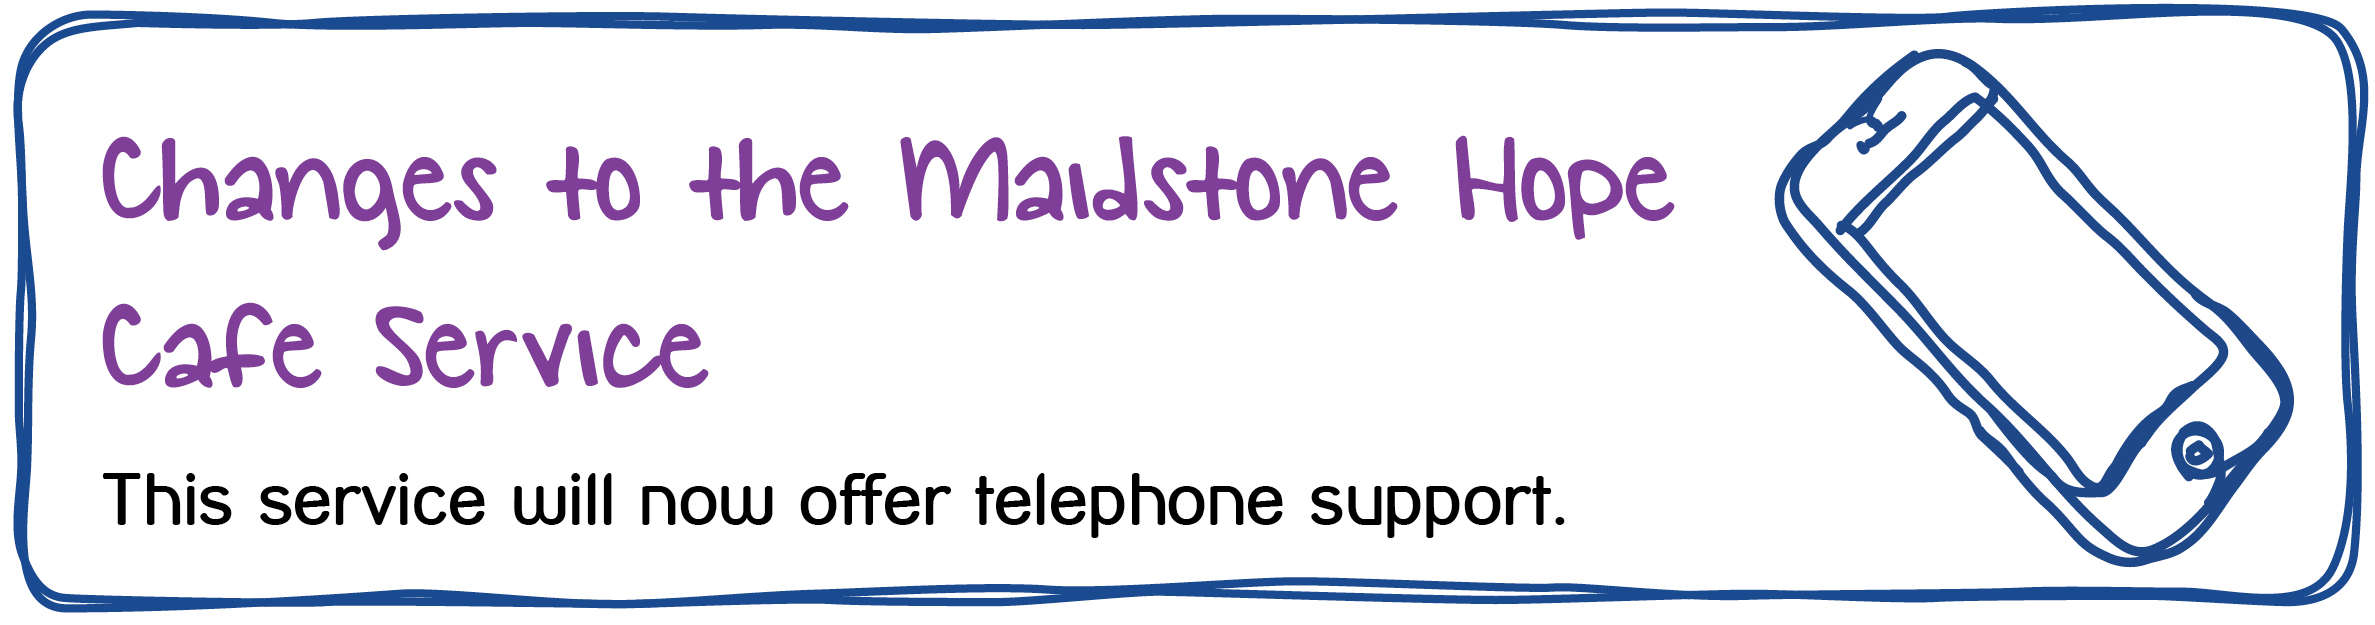 Changes to the Maidstone Hope Cafe Service. This service will now offer telephone support.